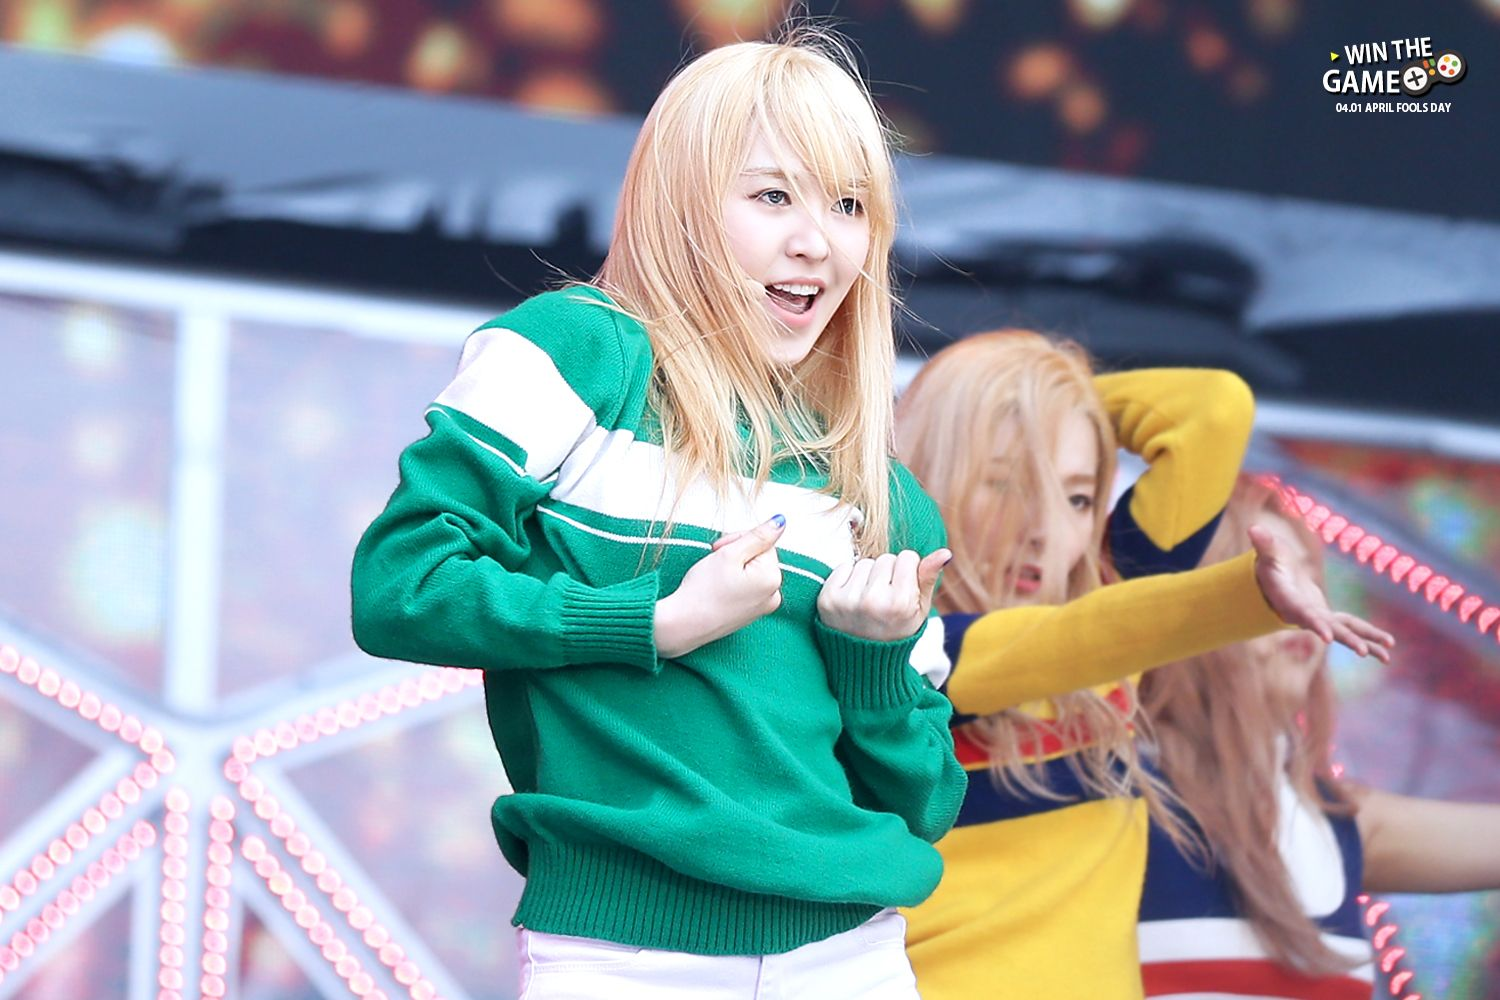 [Happy April Fool's Day] 150401 Wendy by SHINee Taemin's fansite (2)  http://cfile25.uf.tistory.com/original/22288636551AE62B16C315 https://twitter.com/winthegame718/status/582927900430626817